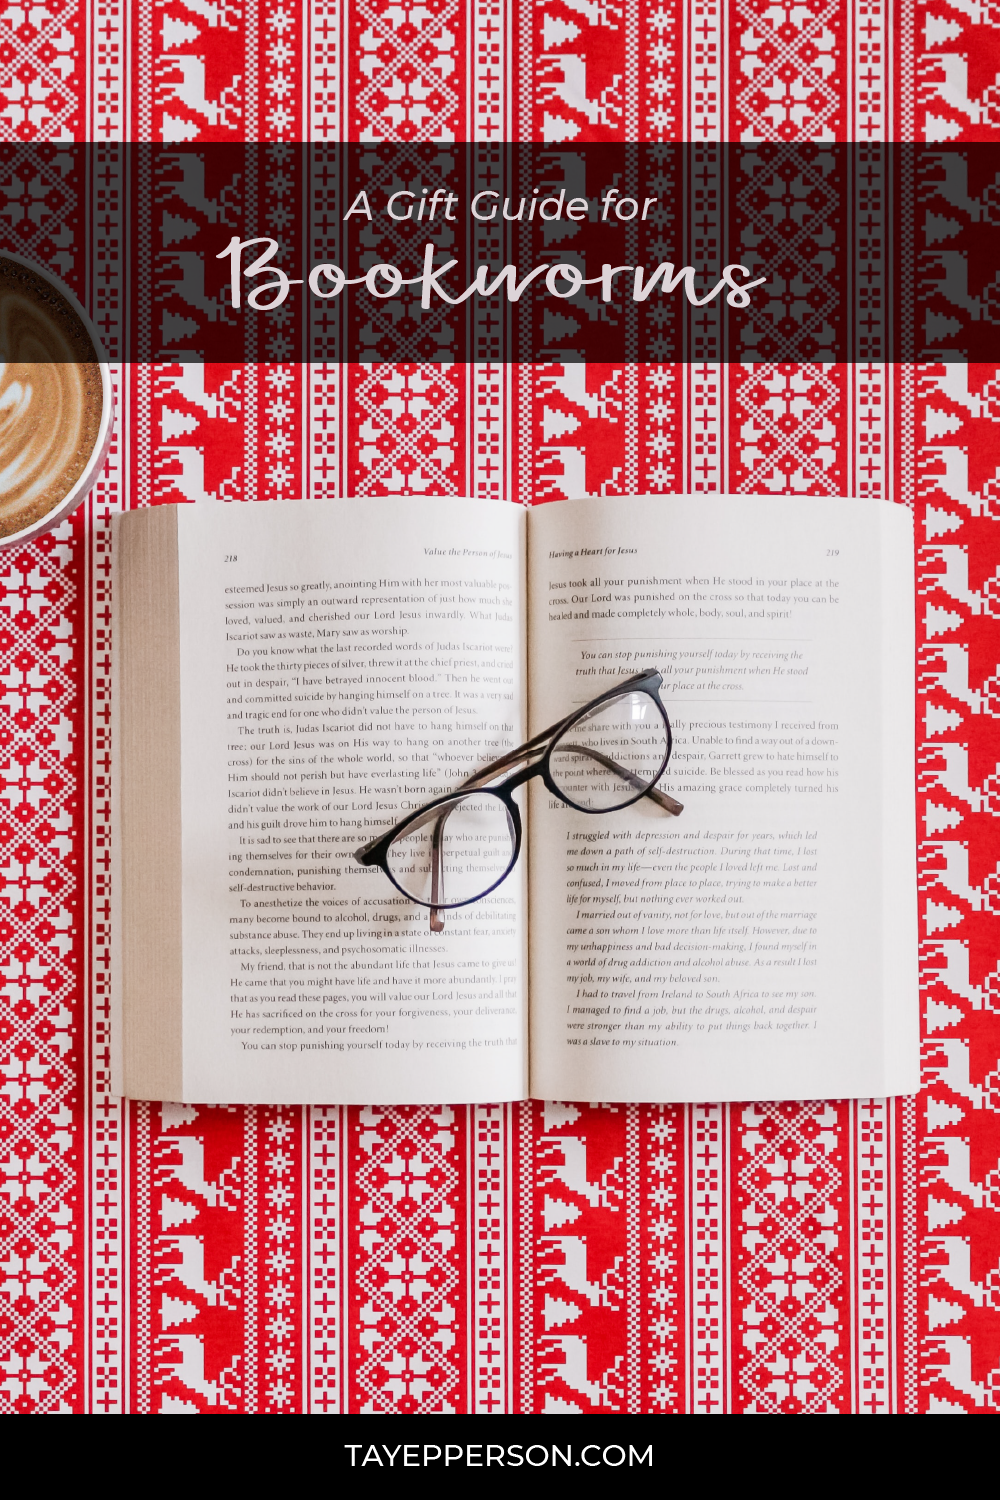 A Gift Guide for the Bookworms | Book worms, Gift guide, Gifts